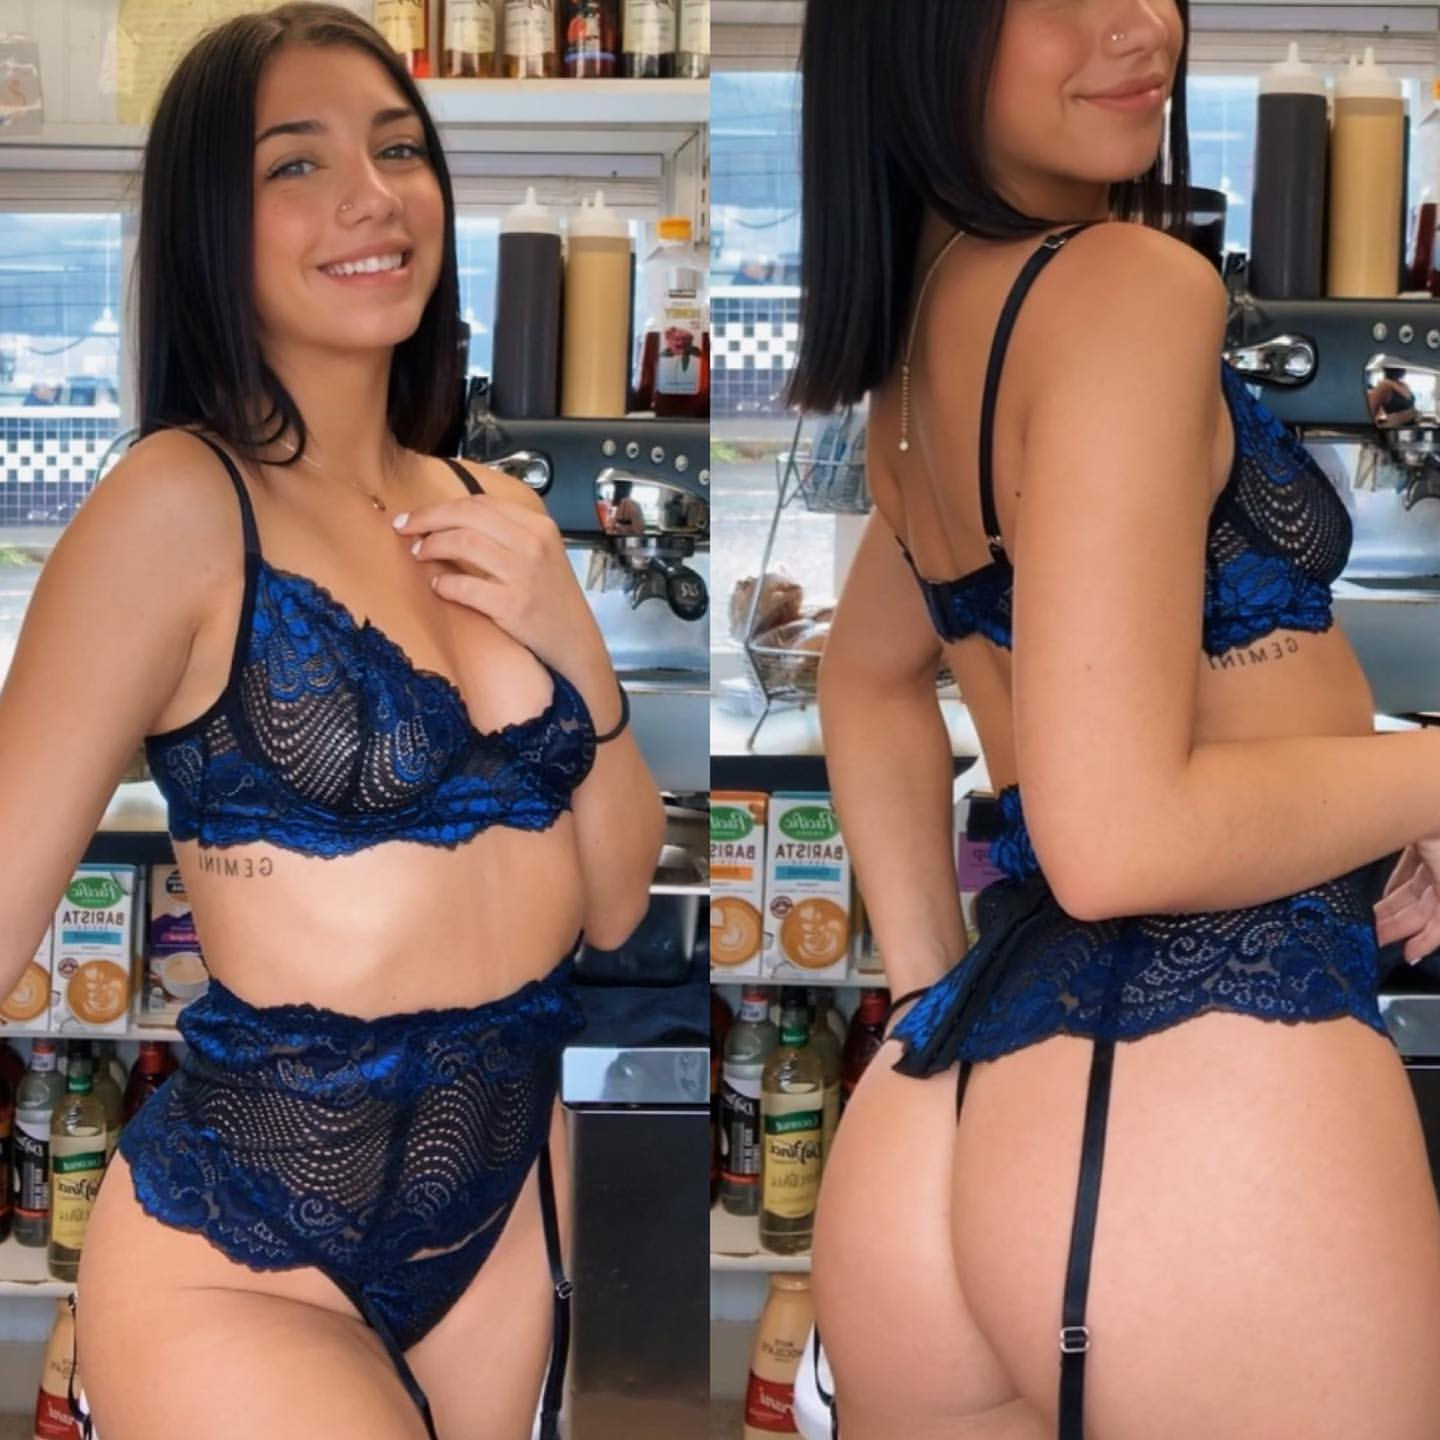 baristaalix Onlyfans Leaked Nude Photos fappenings.com 70